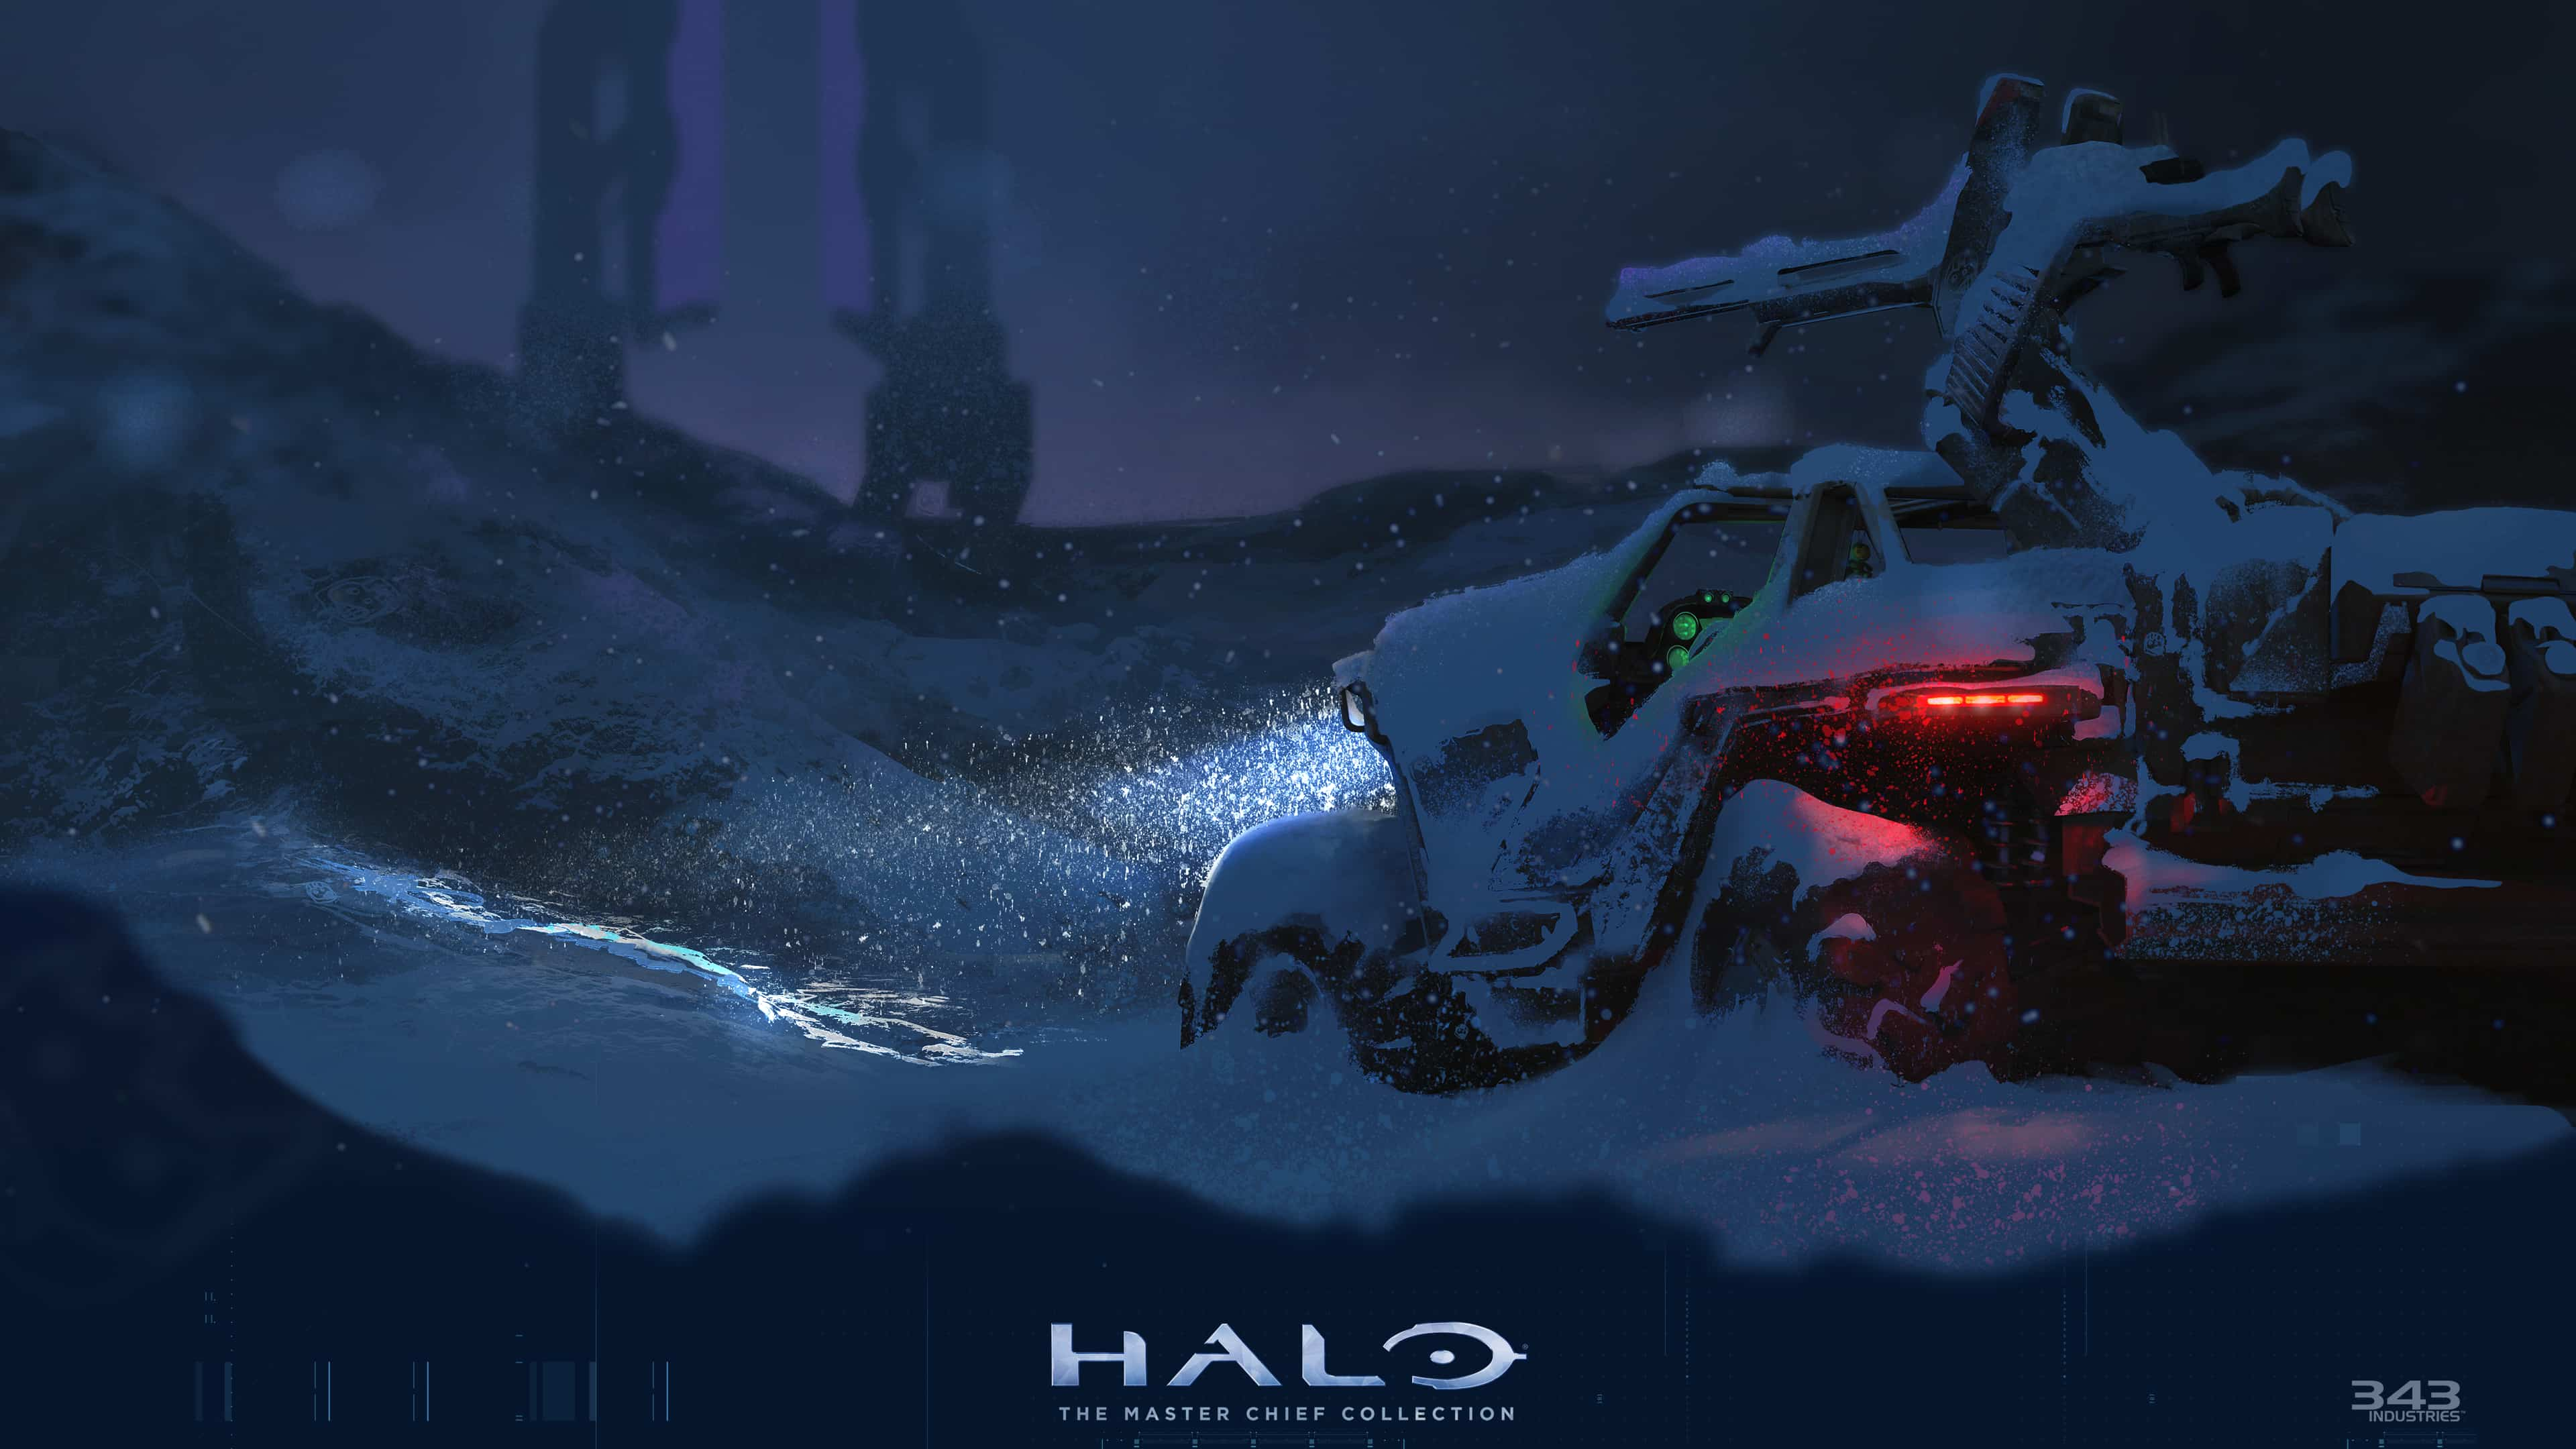 Una Imagen Adelanta La Actualización De Enero Para Halo The Master Chief Collection